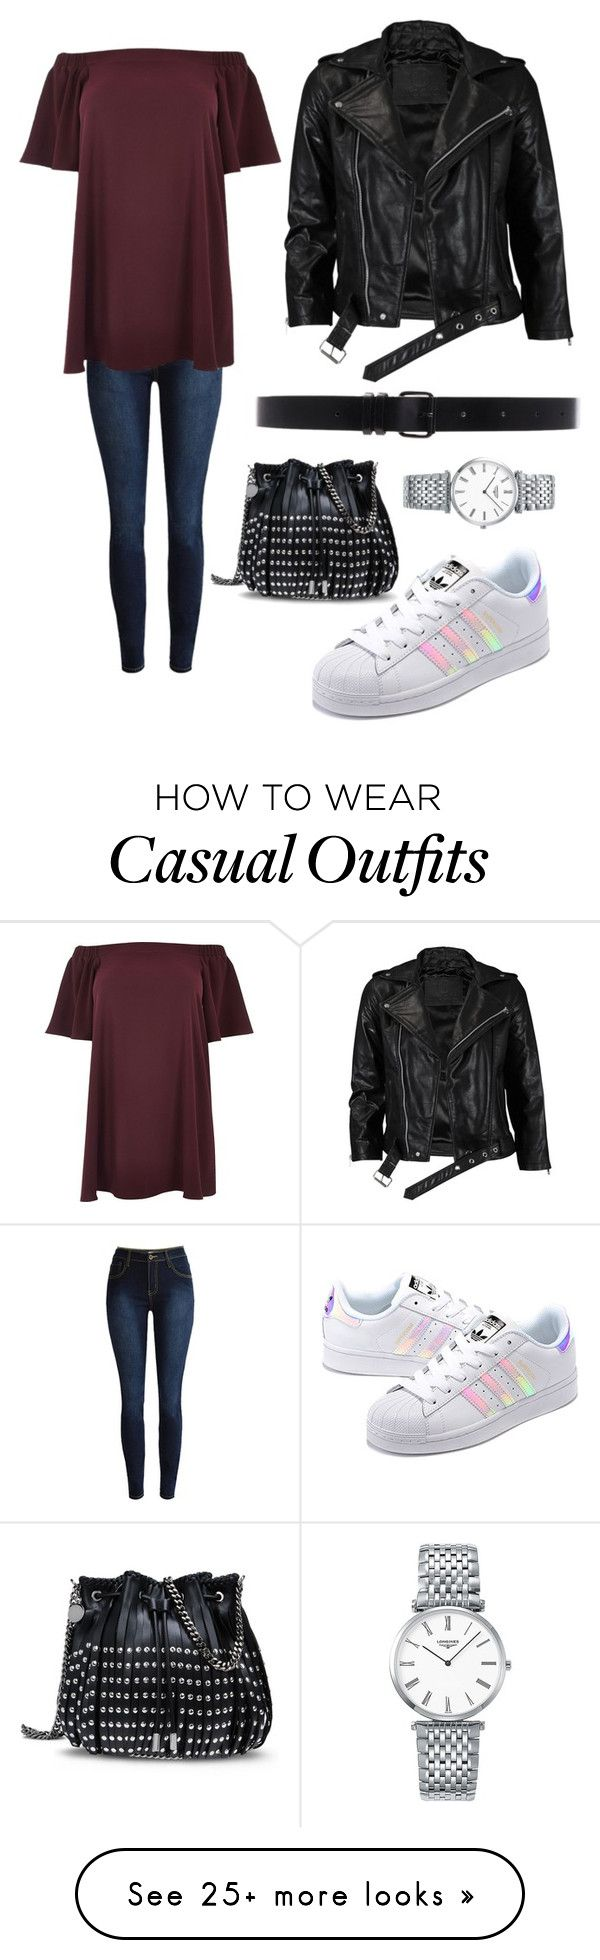 """""""Smart casual"""" by charlotte-ellis-1 on Polyvore featuring River Island, adidas Originals, Longines, STELLA McCARTNEY, VIPARO, Ann Demeulemeester and plus size dresses"""